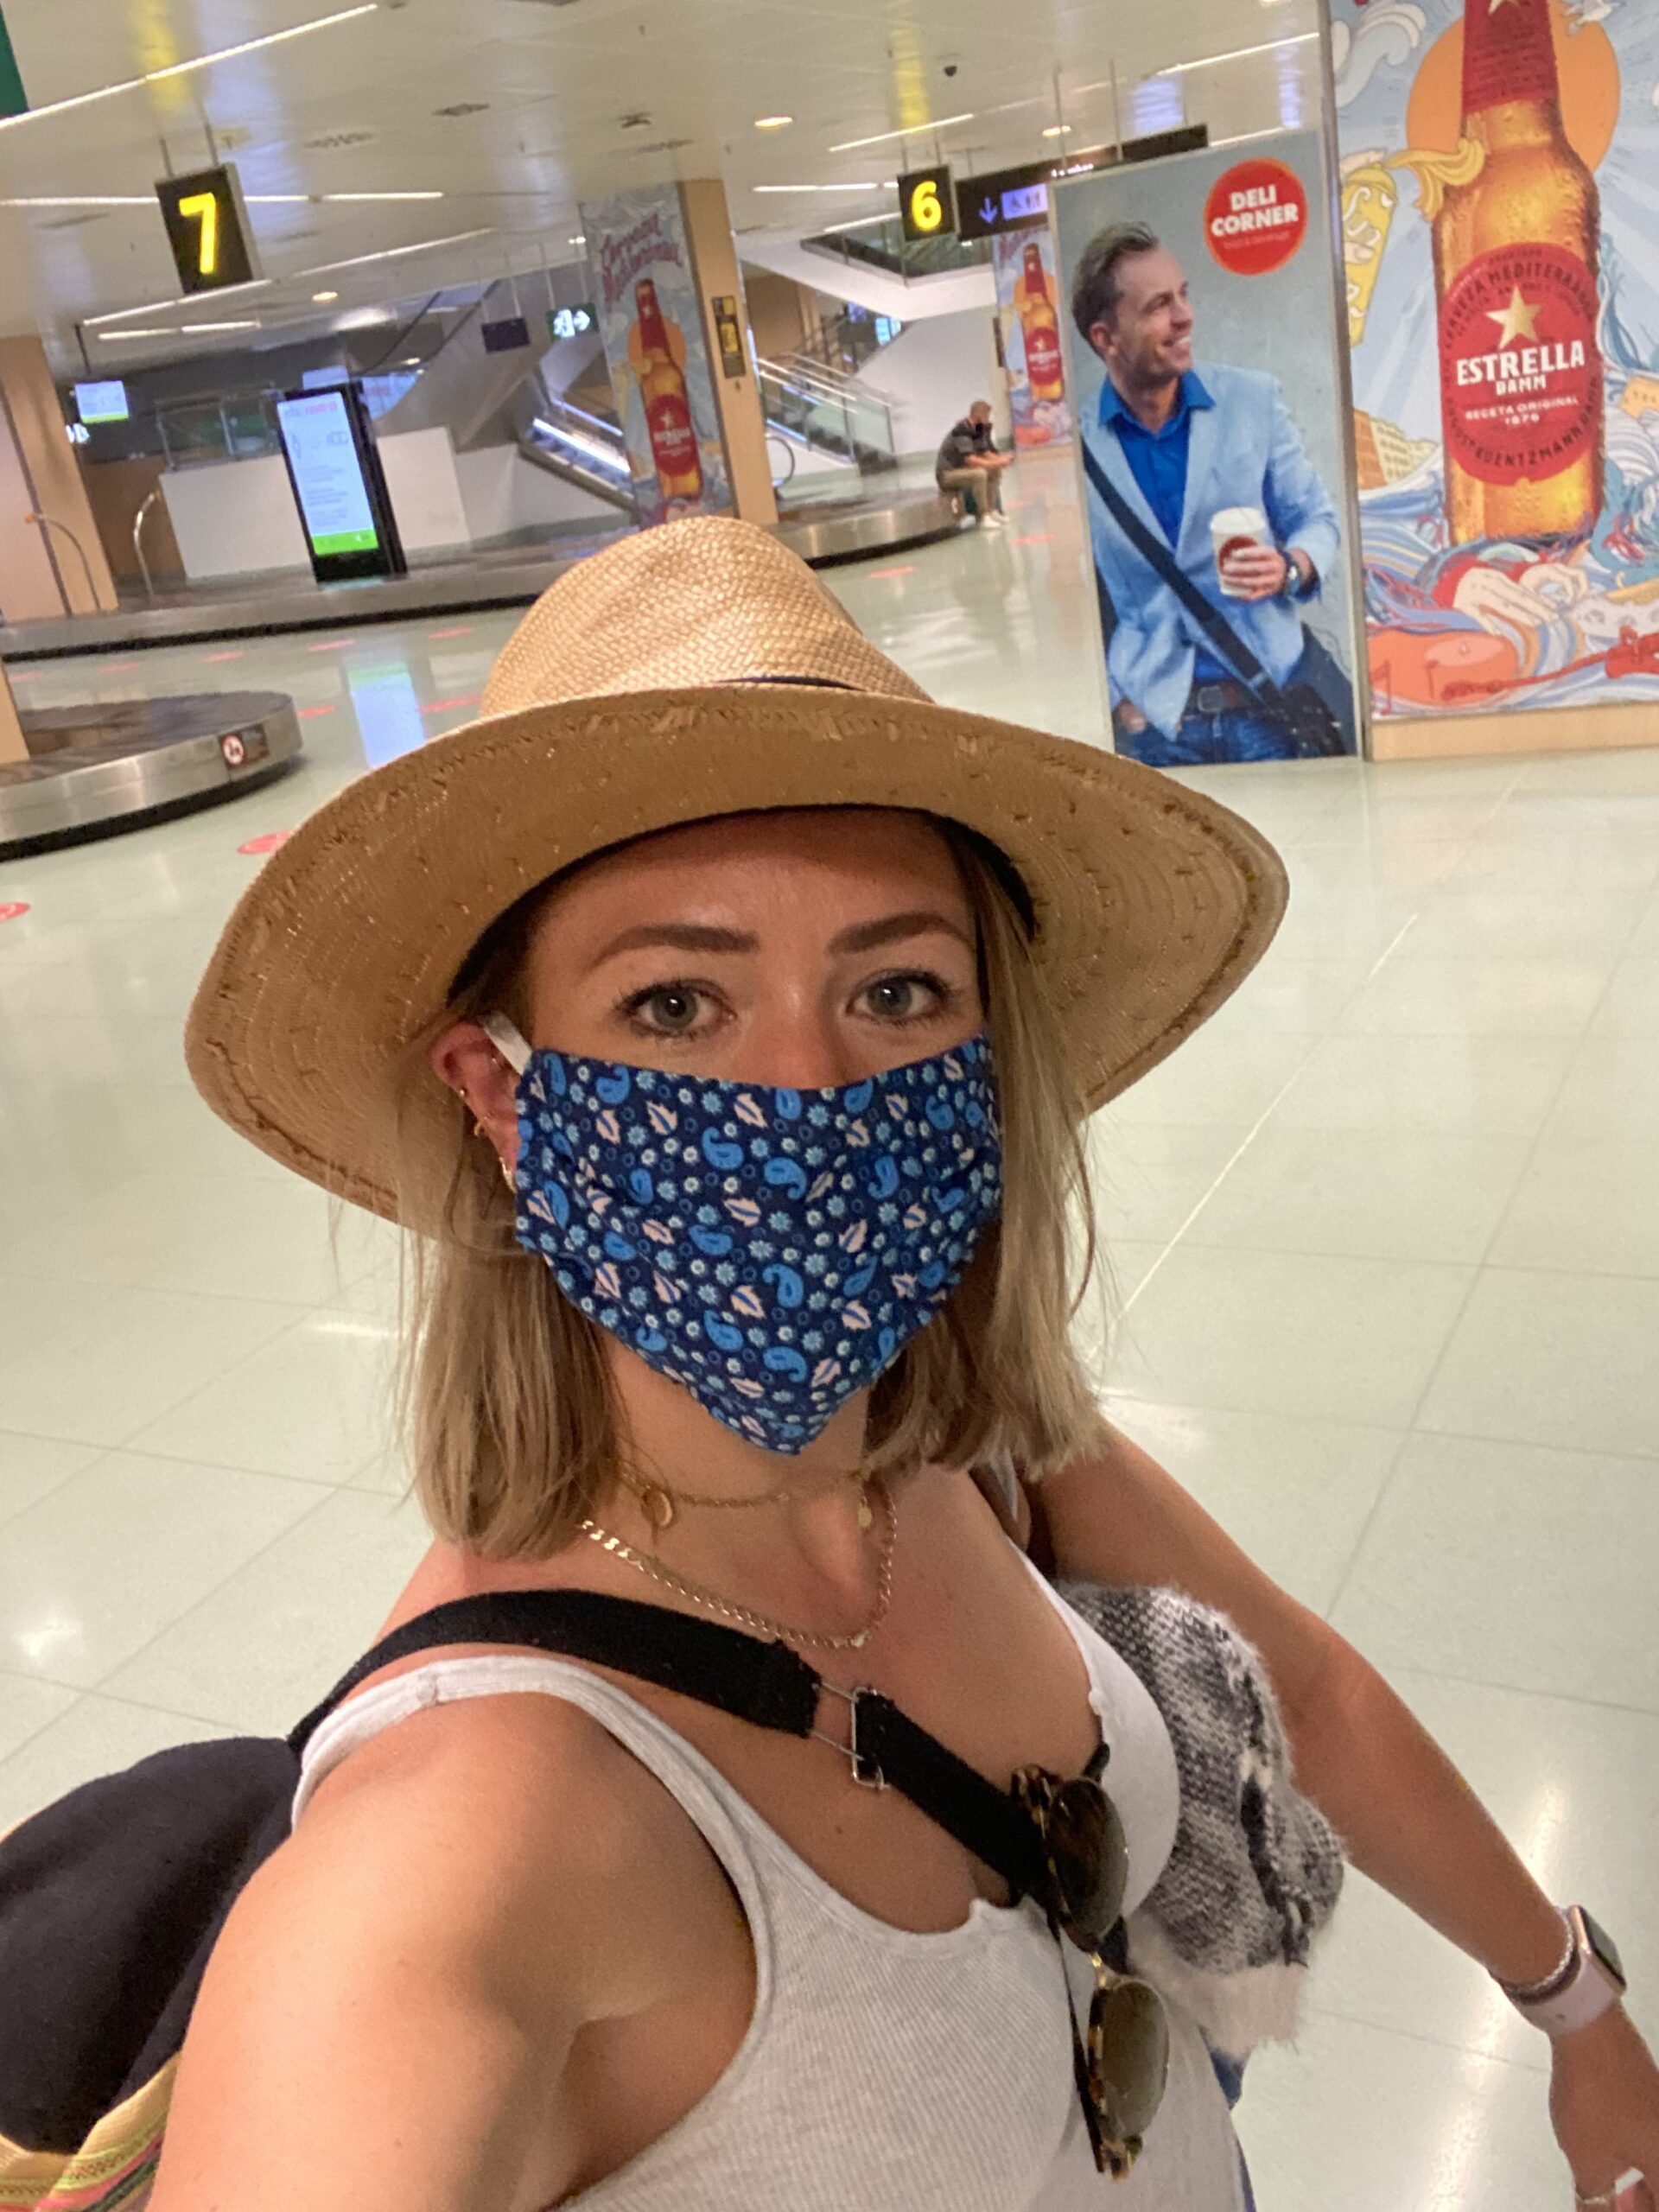 Wearing a face mask in the airport